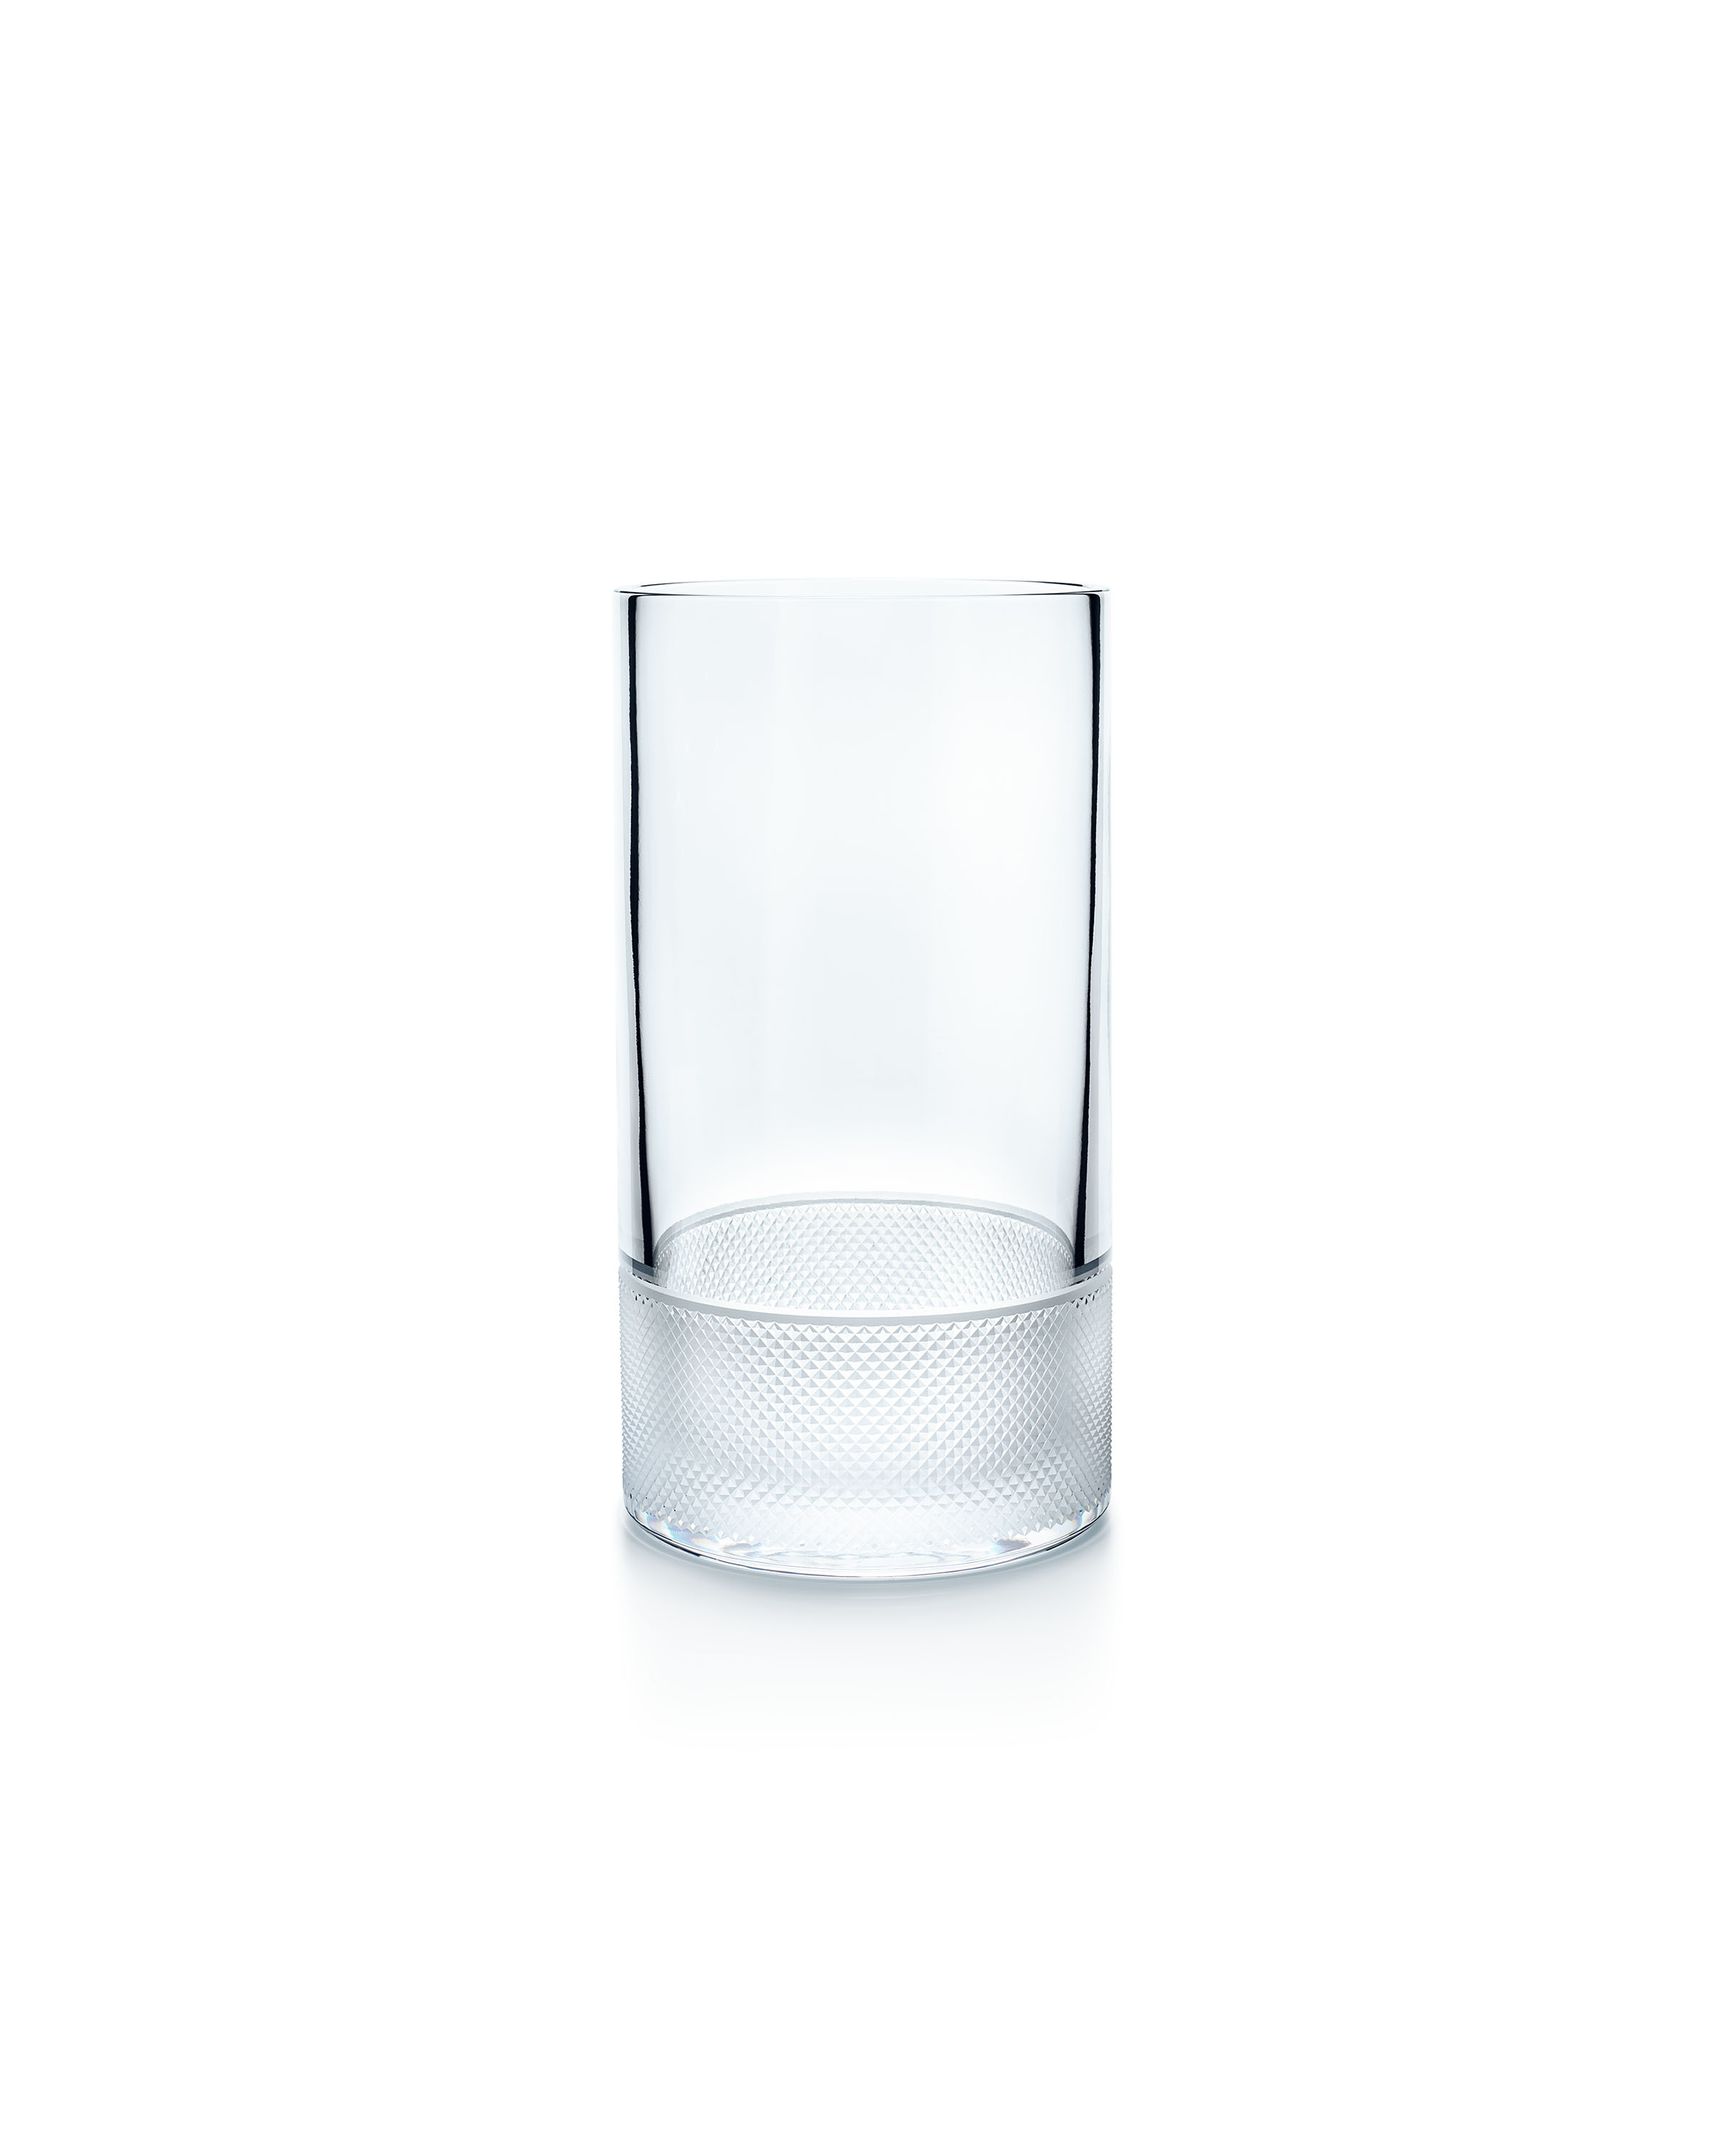 Tiffany & Co. Diamond Point hurricane in lead crystal, large, $350.00. (Photo Credit: Tiffany & Co.)